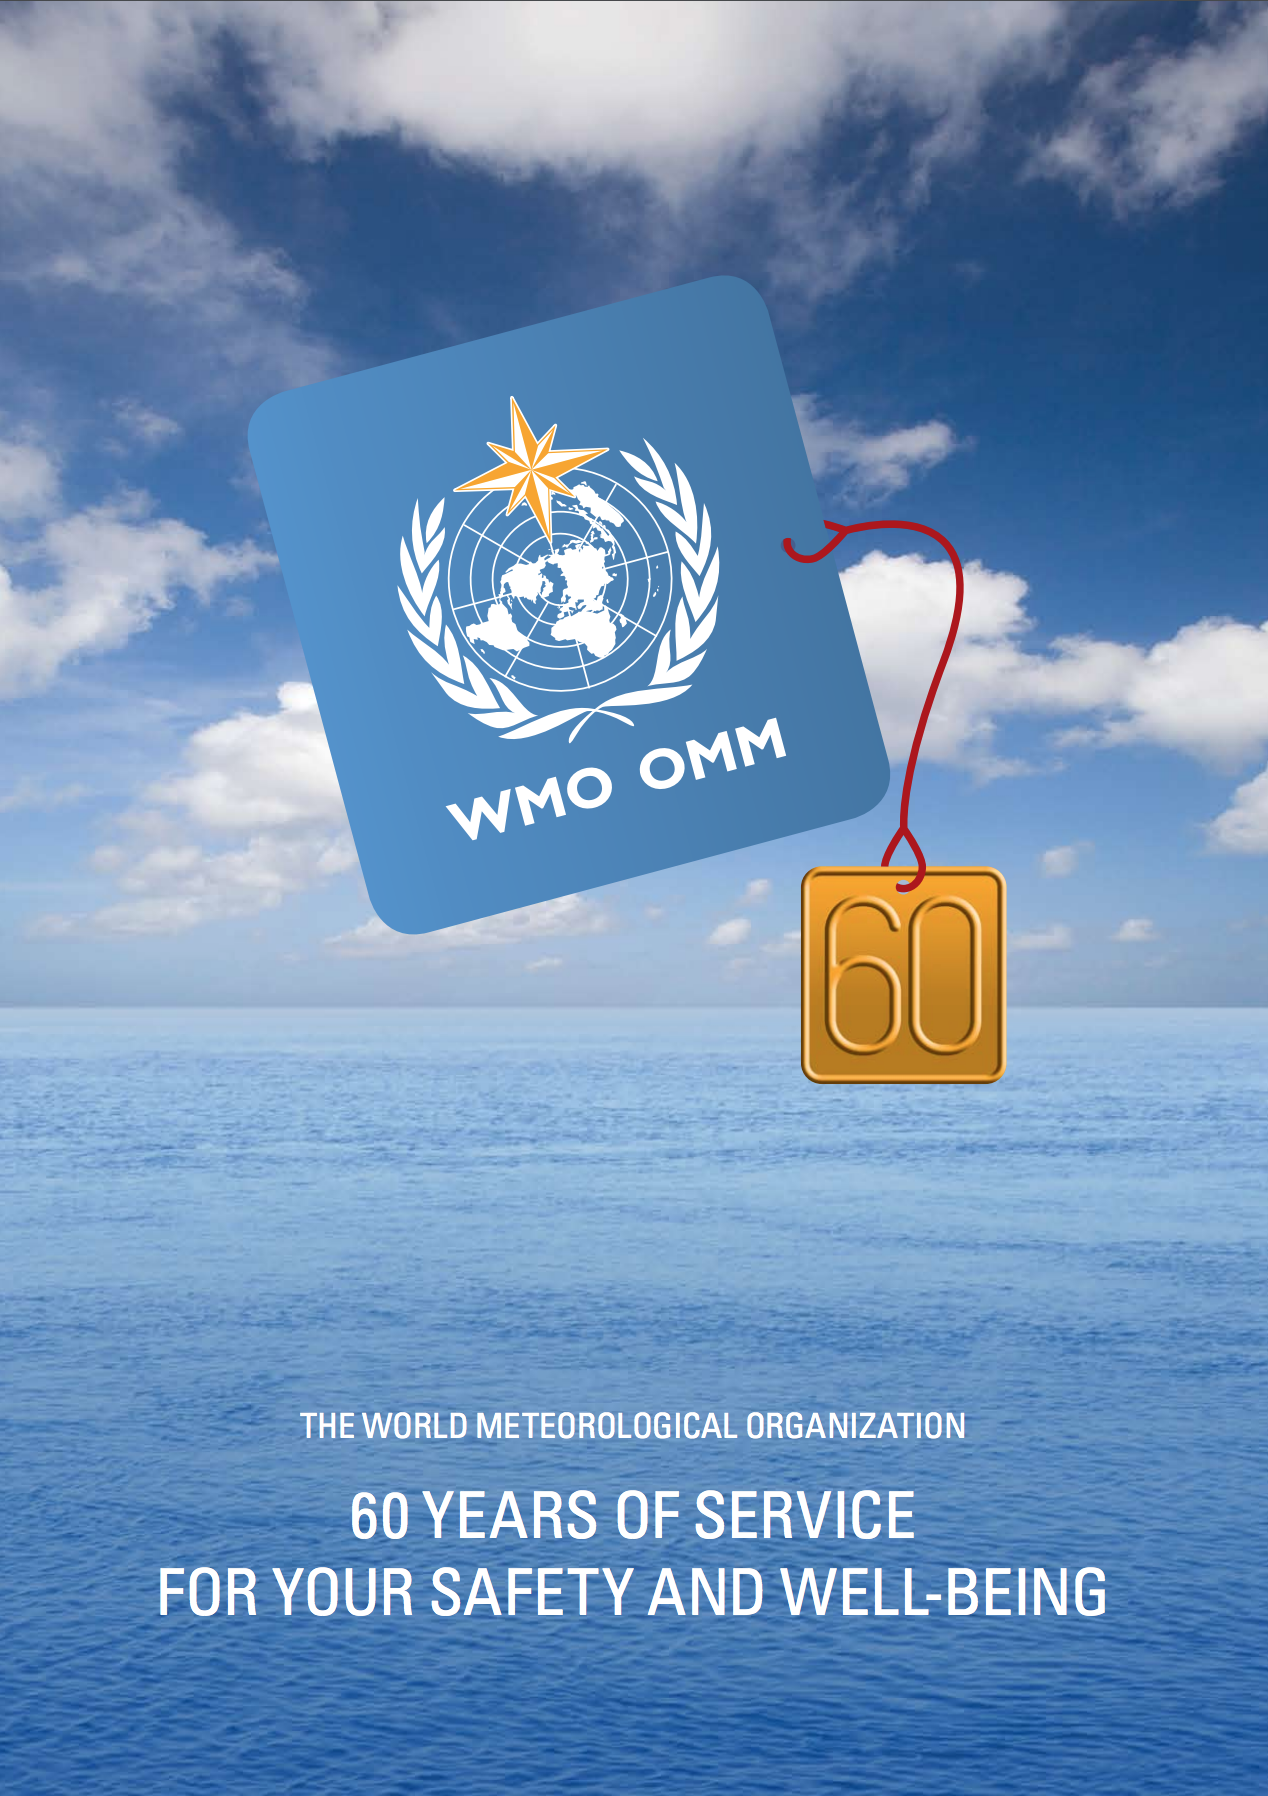 60 years of service for your safety and well-being